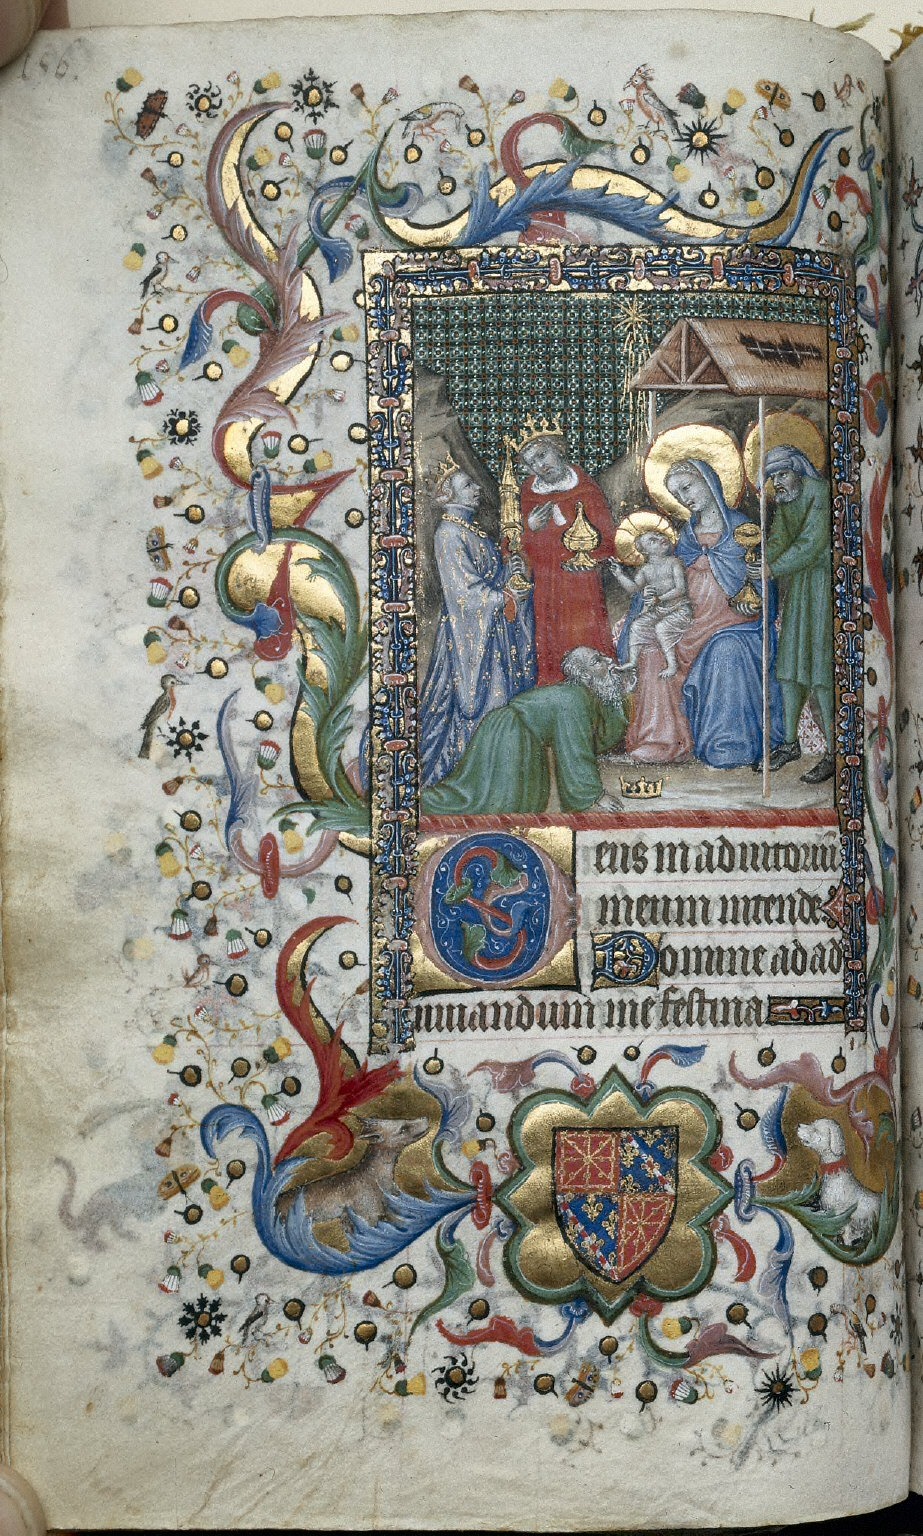 Hours of Charles the Noble, King of Navarre (1361-1425): Adoration of the Magi (Sext), fol. 78 (verso)